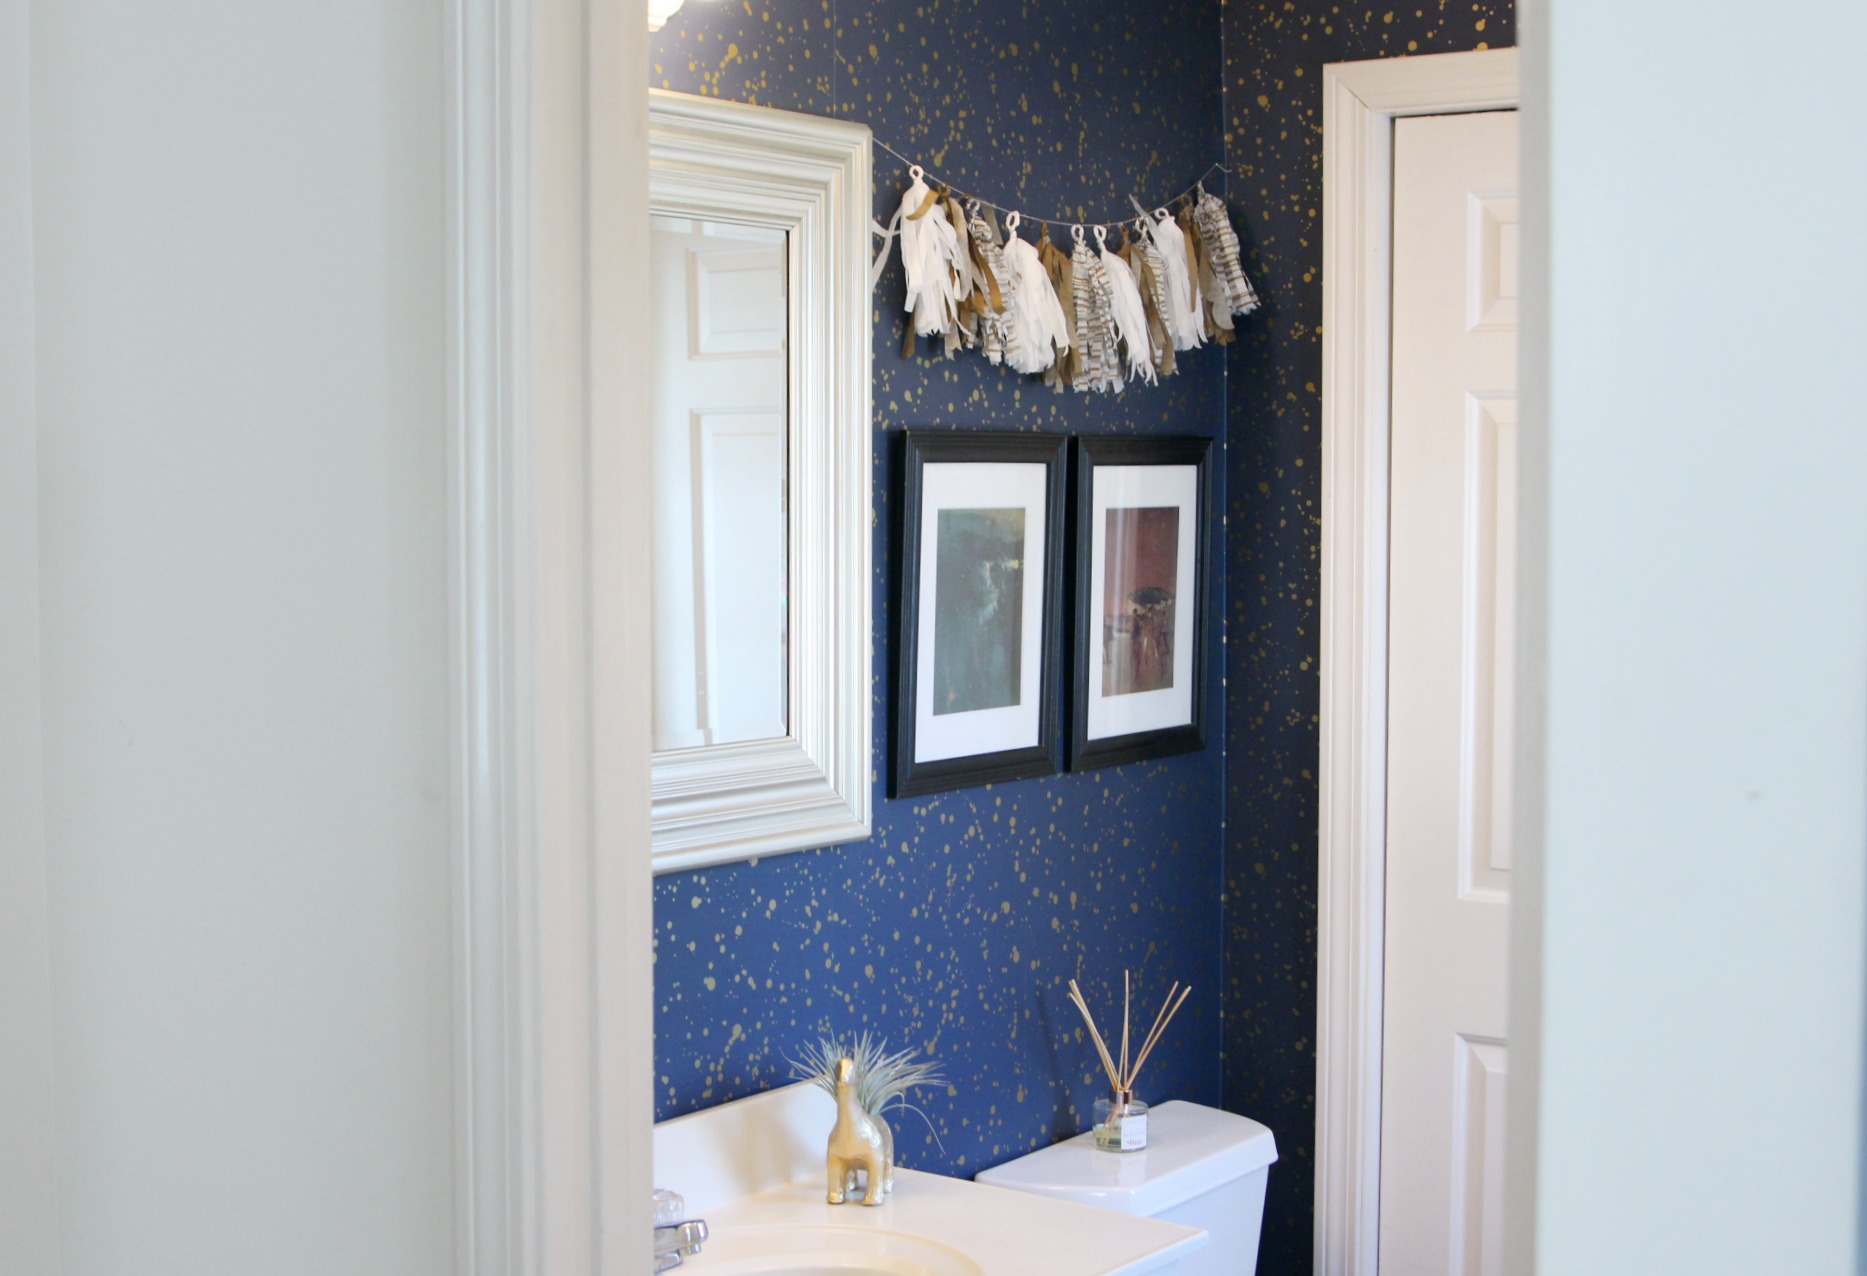 11 Easy Ways To Make Your Rental Bathroom Look Stylish: How To Decorate Your Rental Space? Bathroom Rental Decor